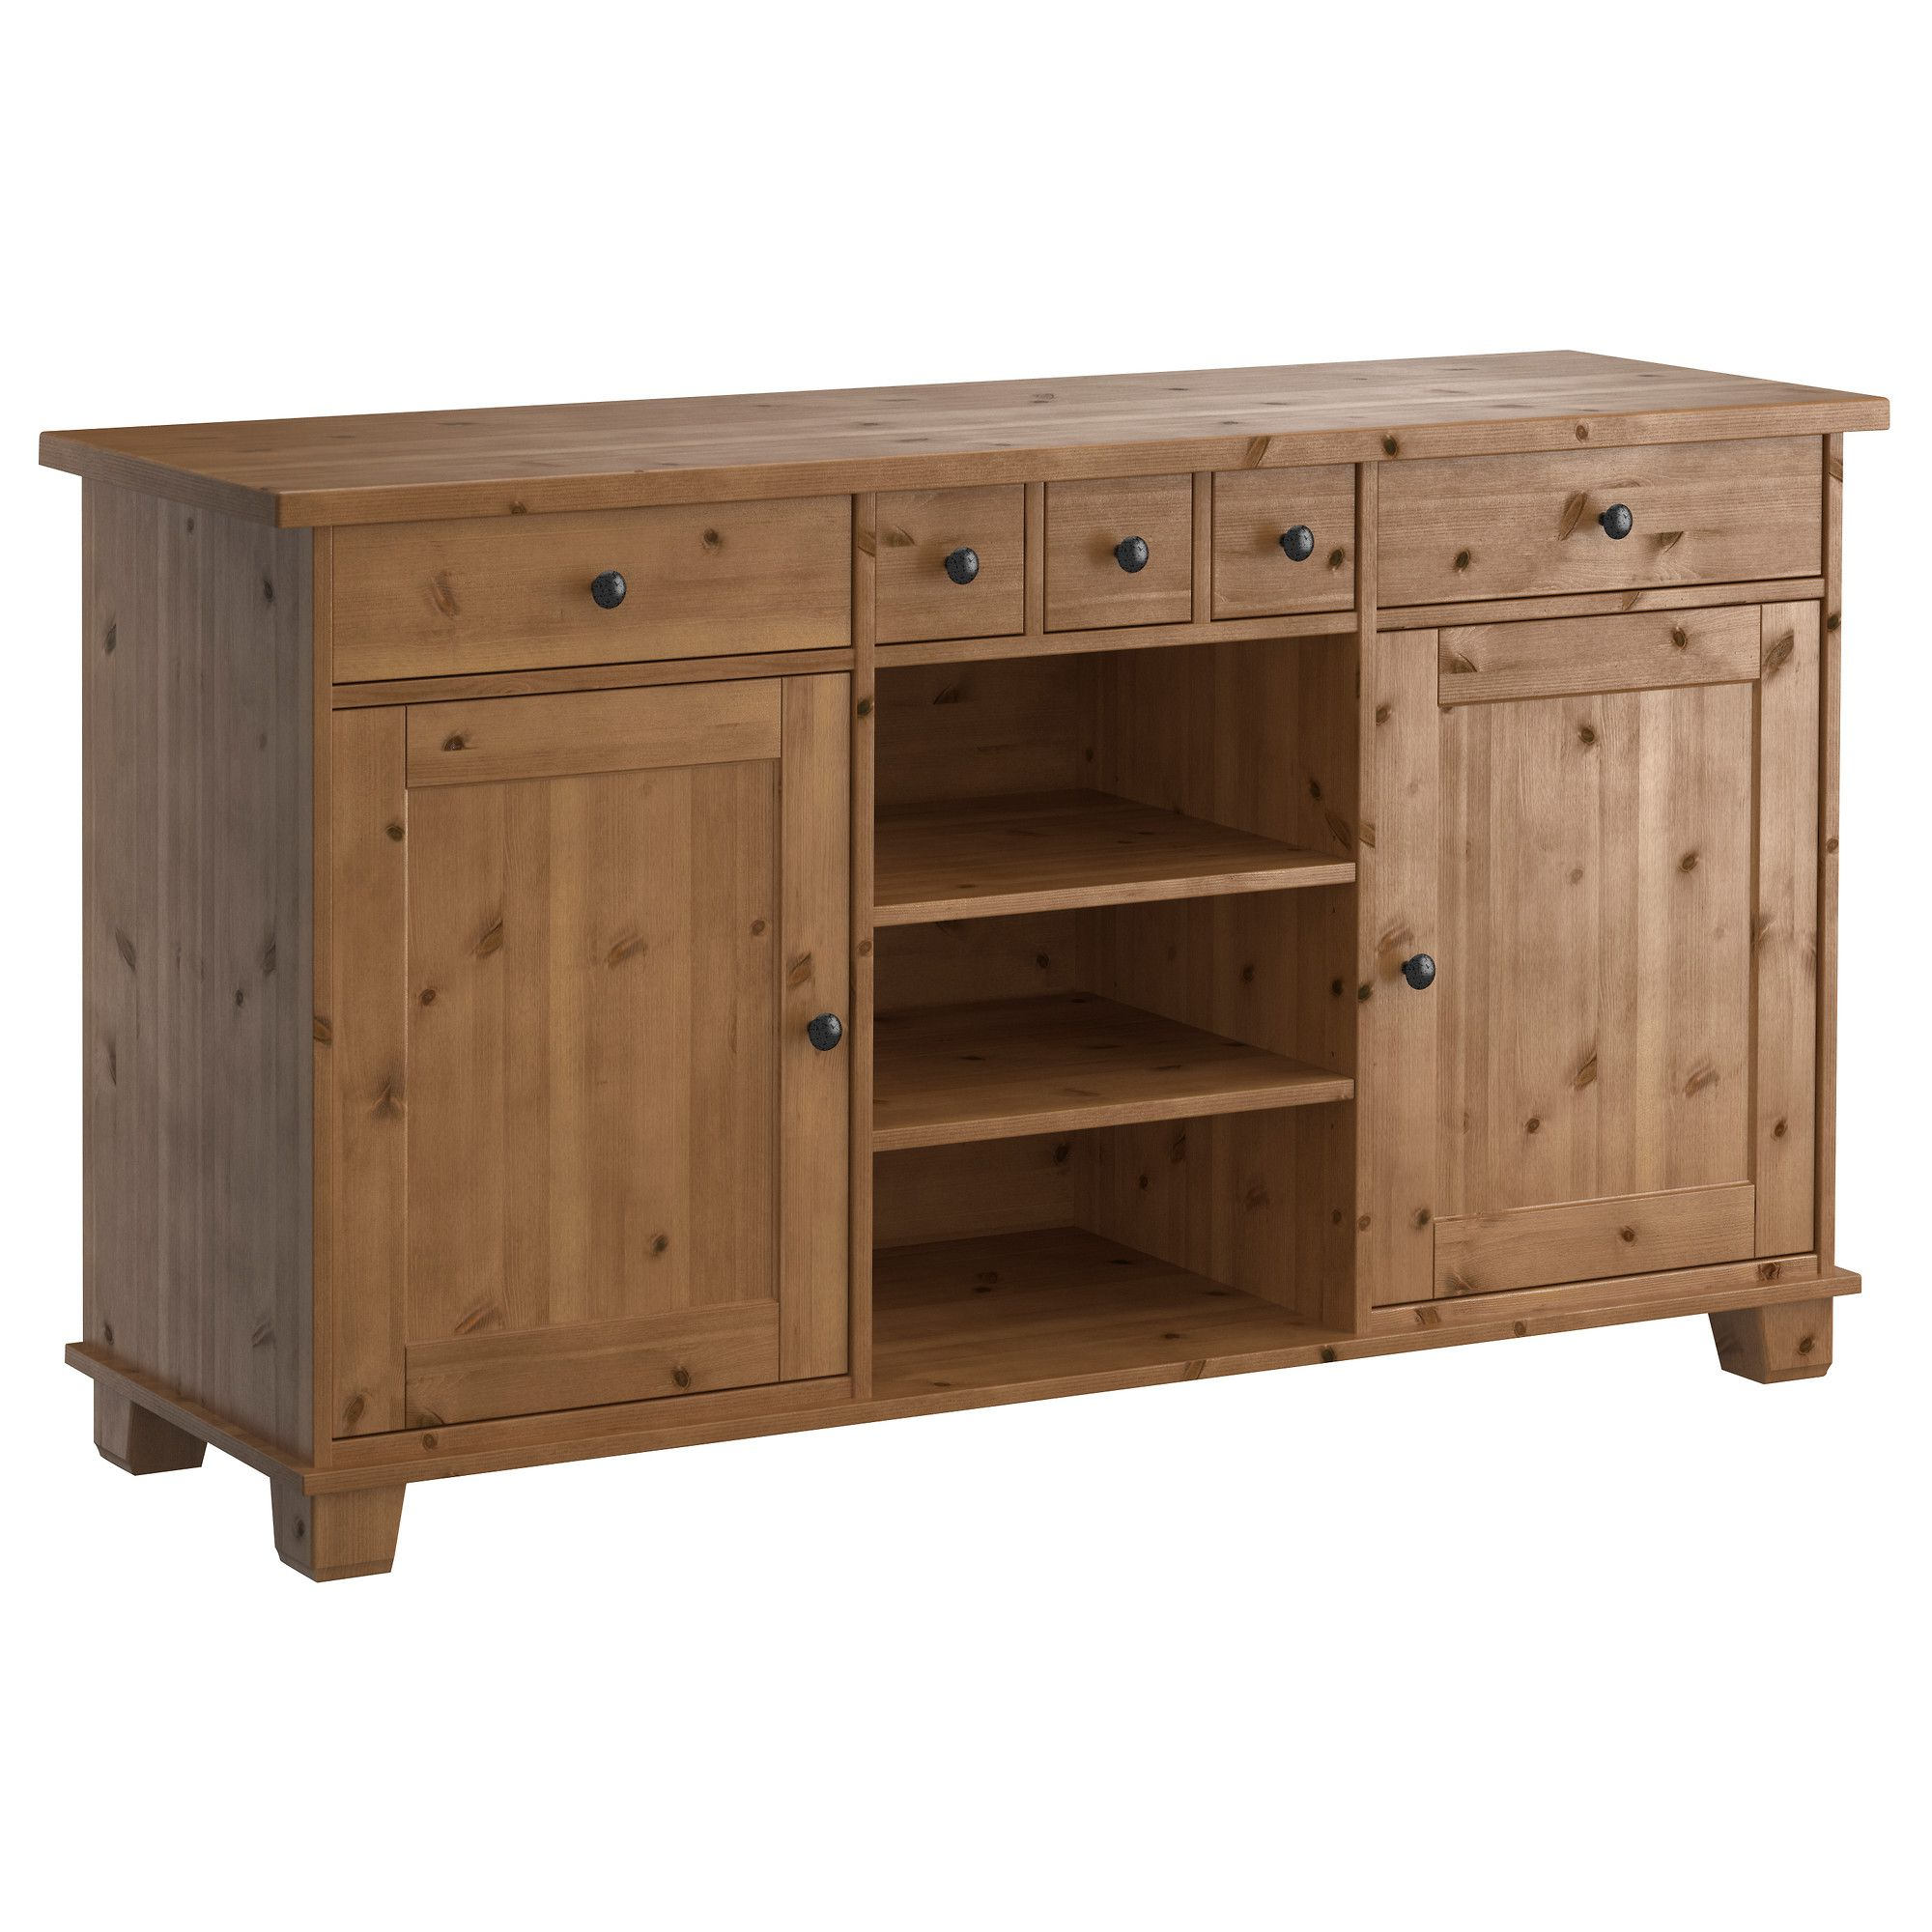 Shop For Furniture, Lighting, Home Accessories & More | Home With Contemporary Style Wooden Buffets With Two Side Door Storage Cabinets (View 16 of 20)